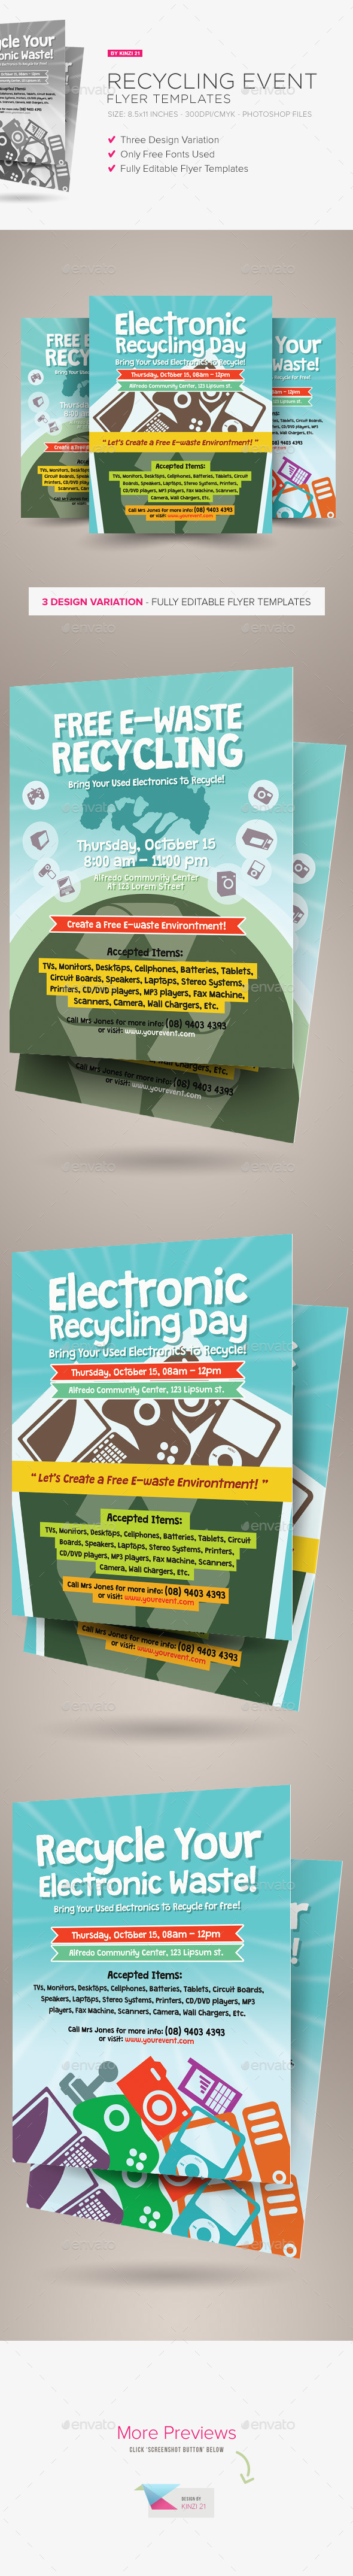 Recycling Event Flyer Templates - Miscellaneous Events